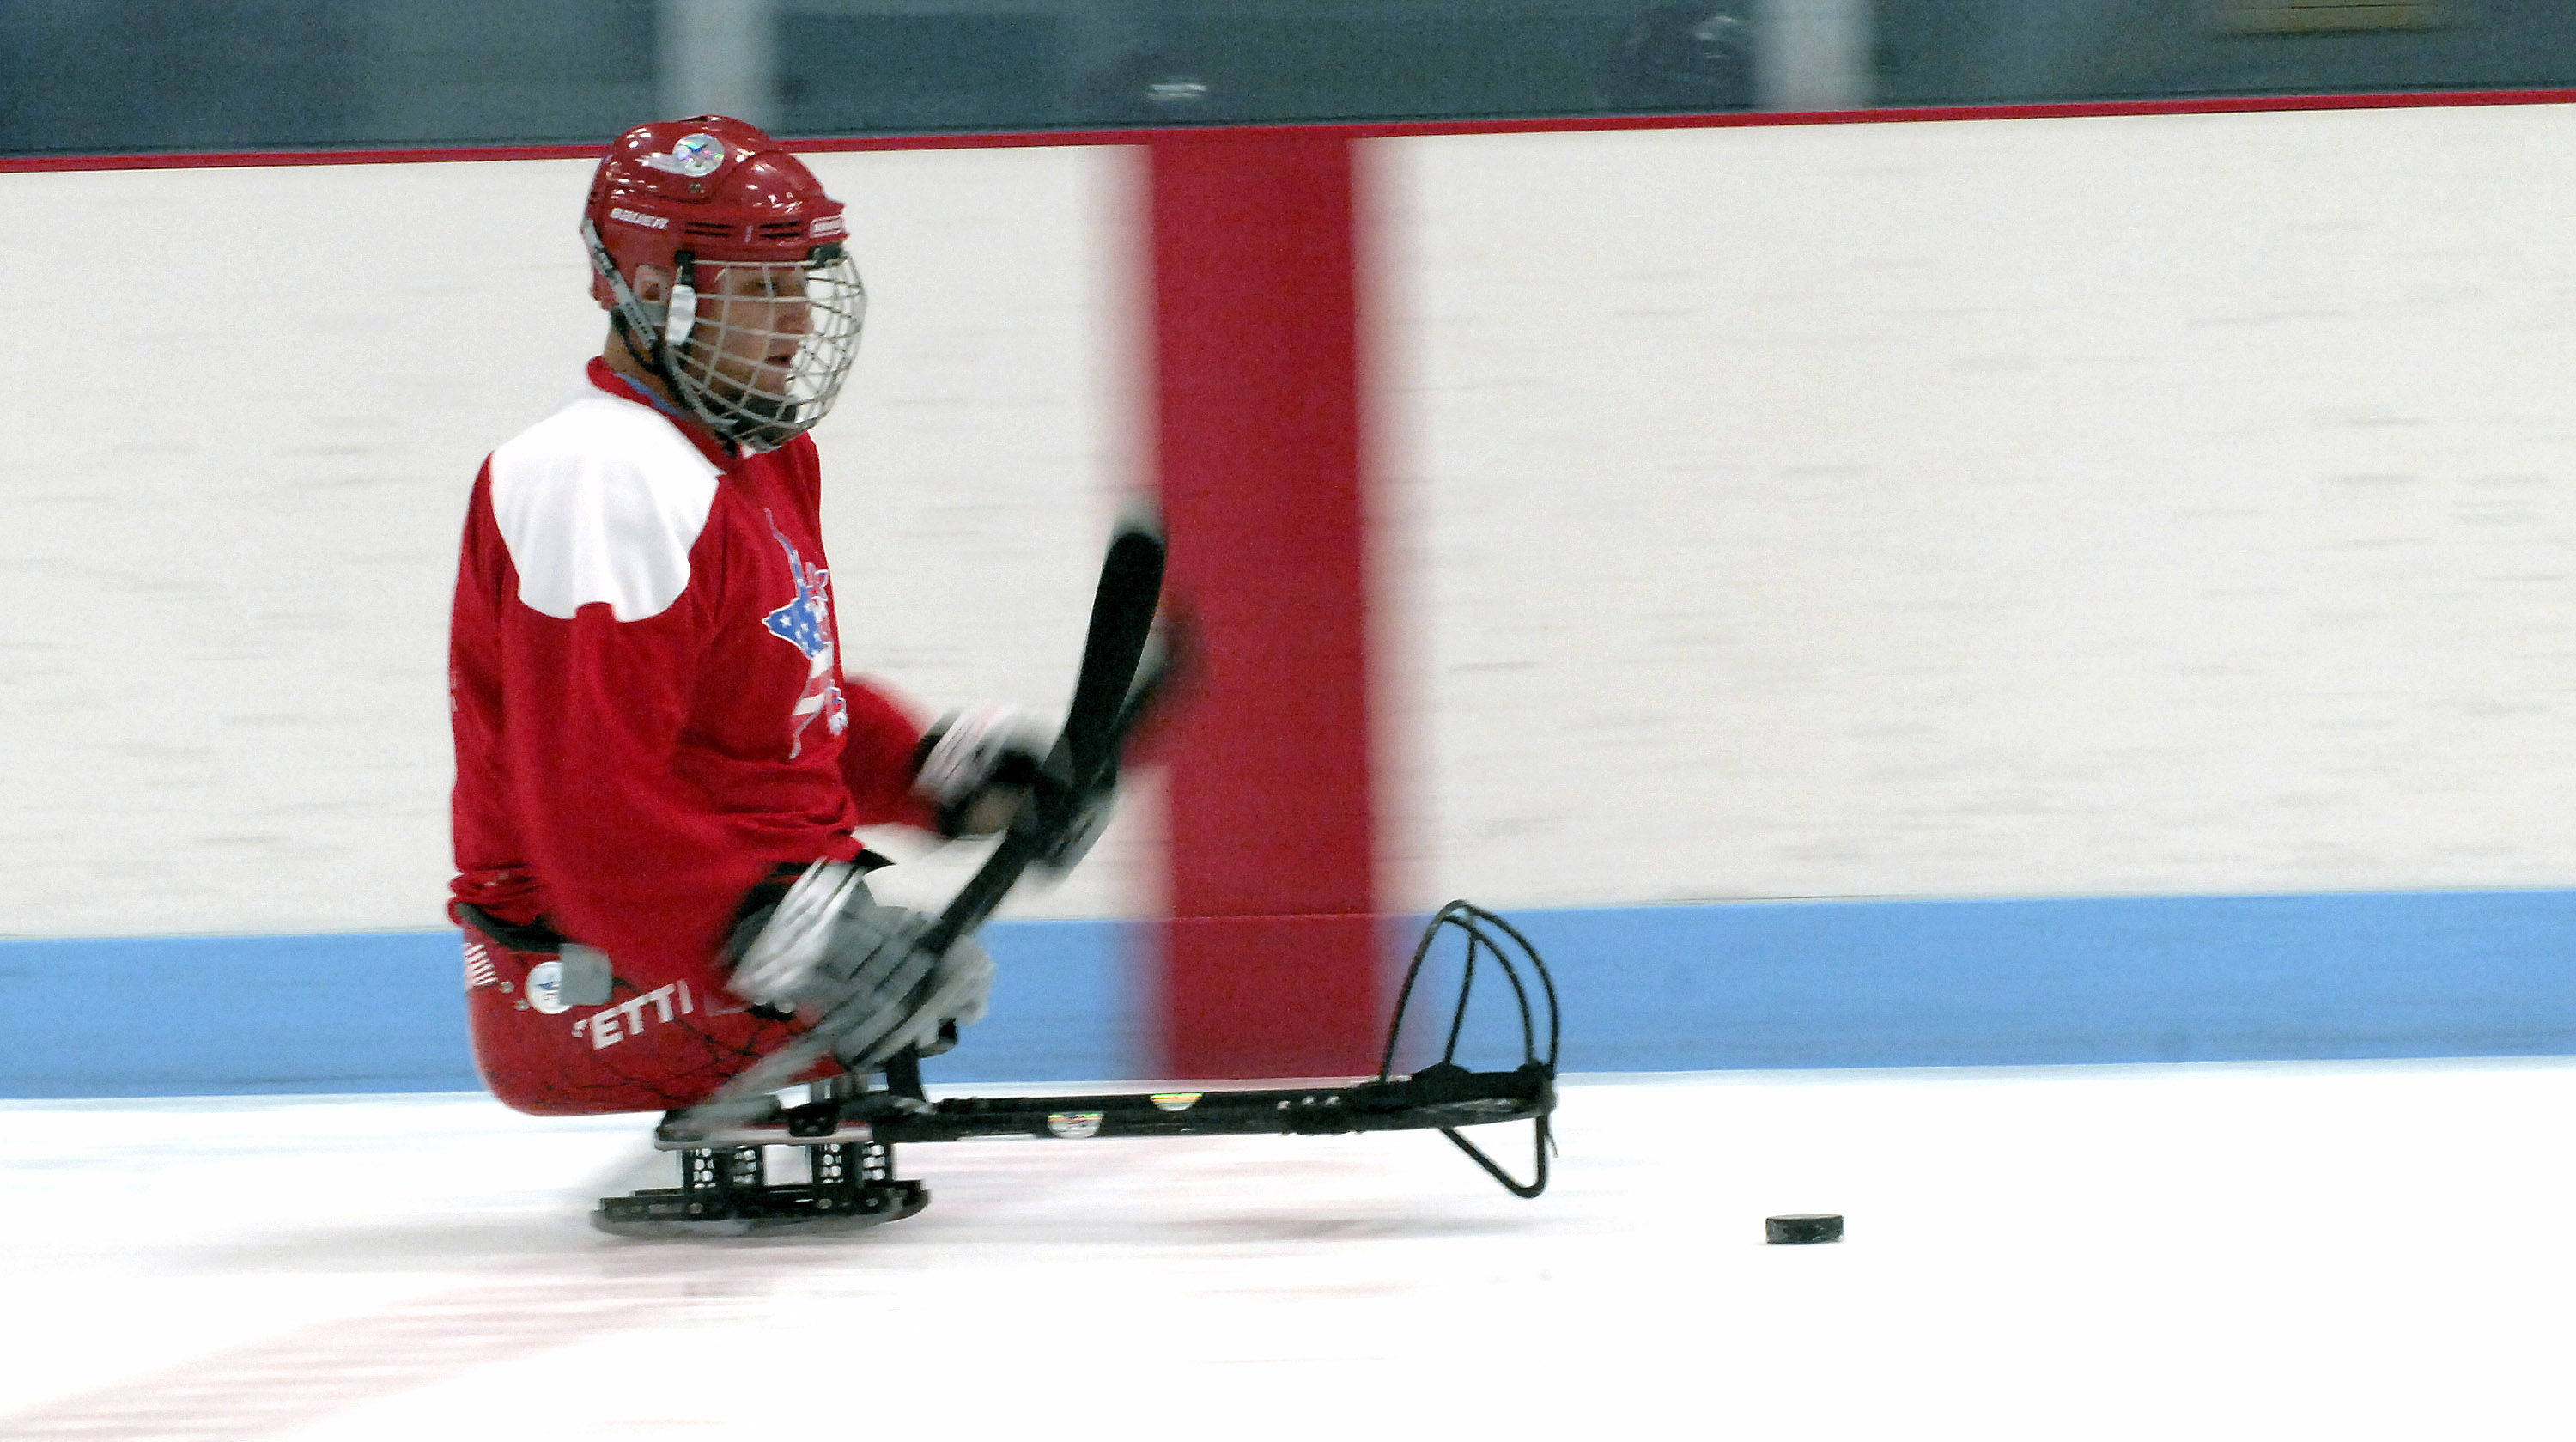 Paralympic ice sledge hockey players of Estonia